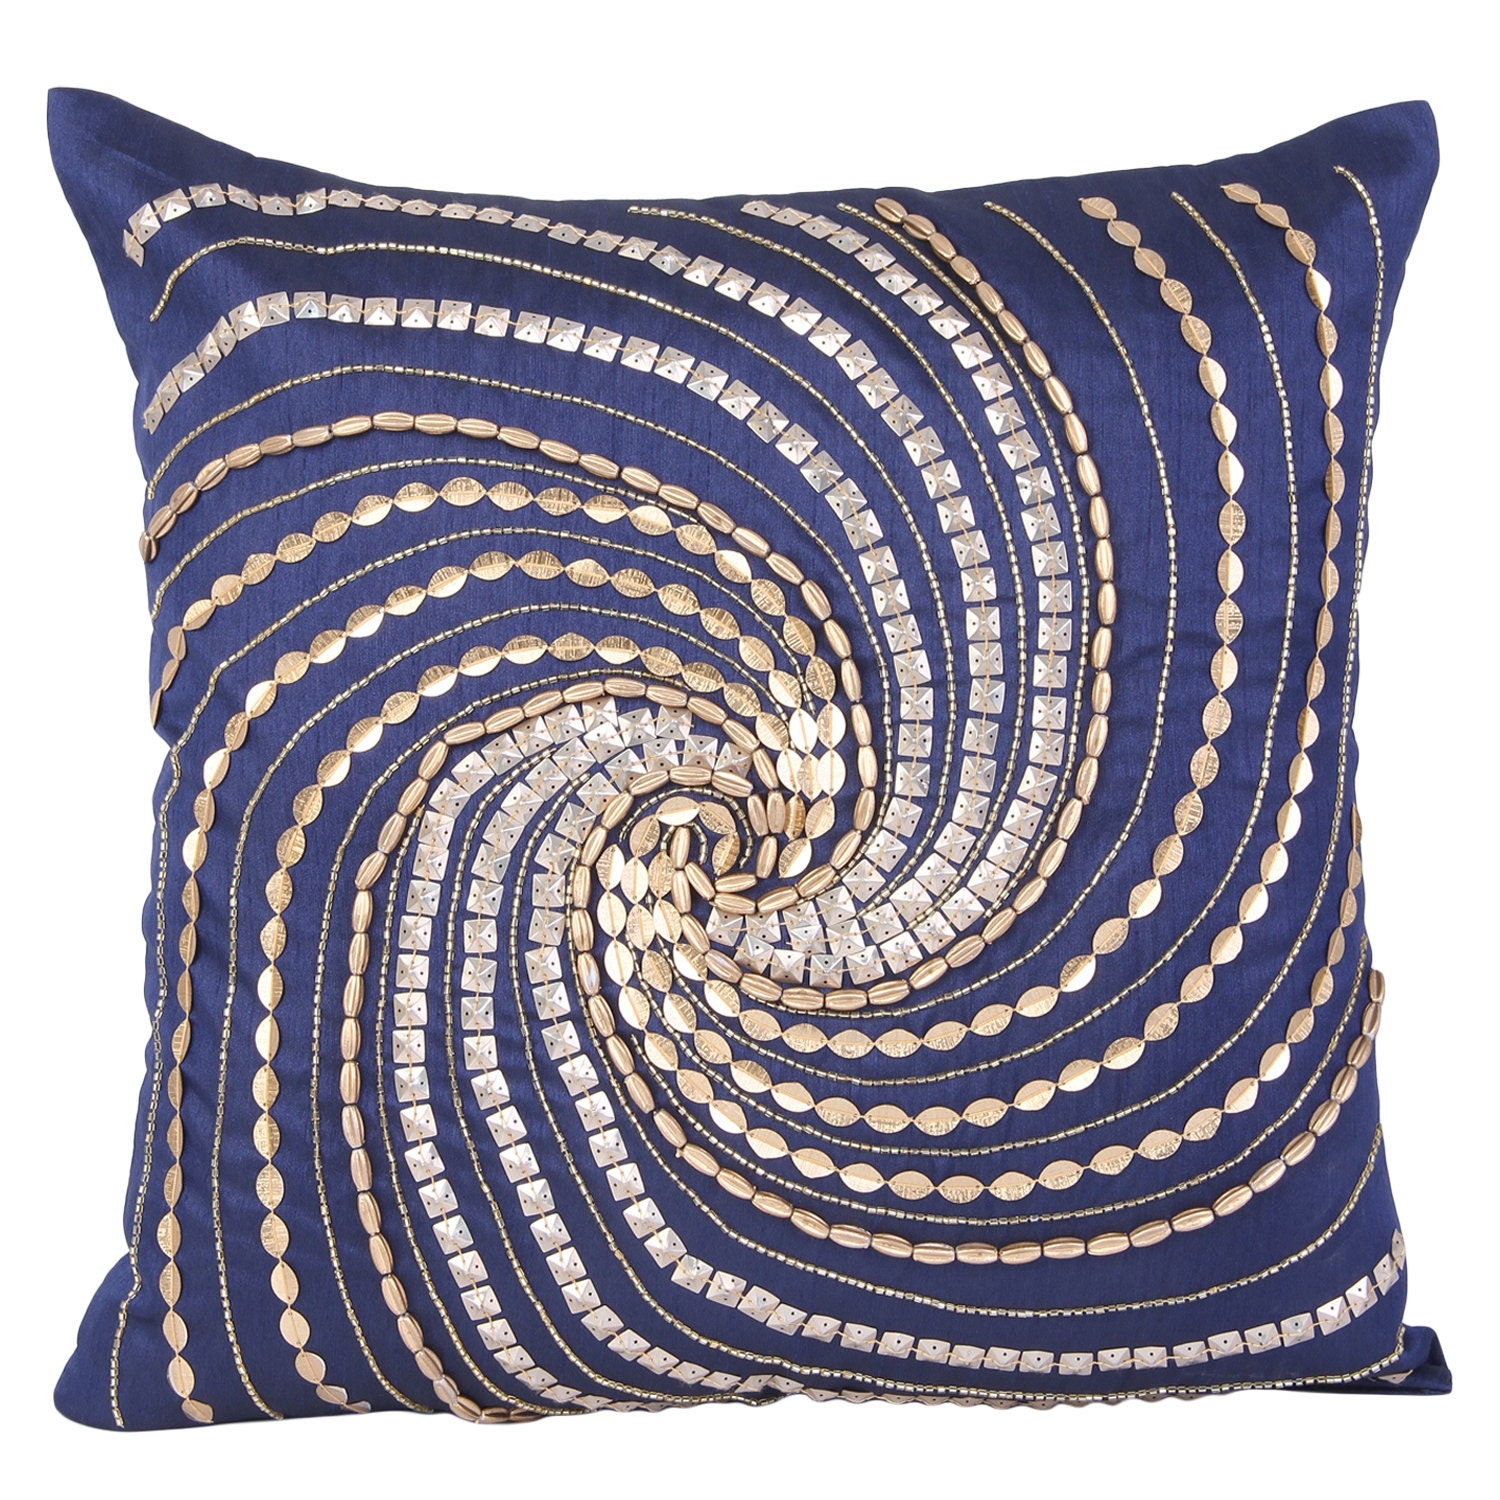 Blue Beaded Throw Pillow : Blue Gold Decorative Pillow Cover Blue Gold Beaded Accent